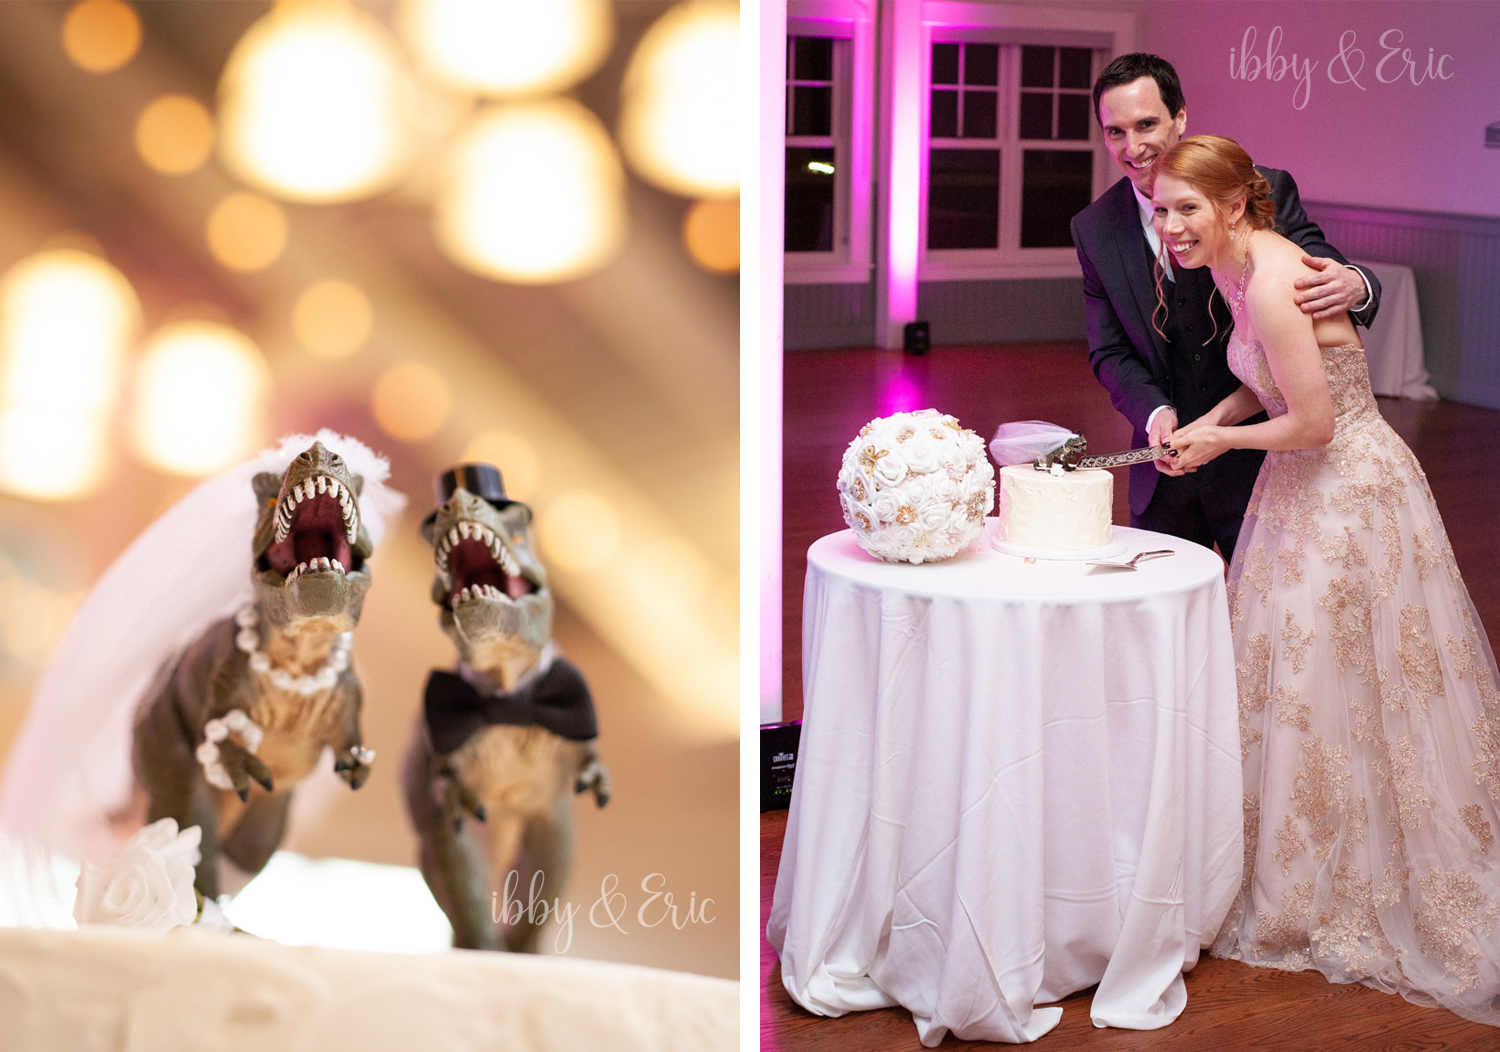 Bride & groom cut the cake, with realistic T-Rex dinosaur cake toppers